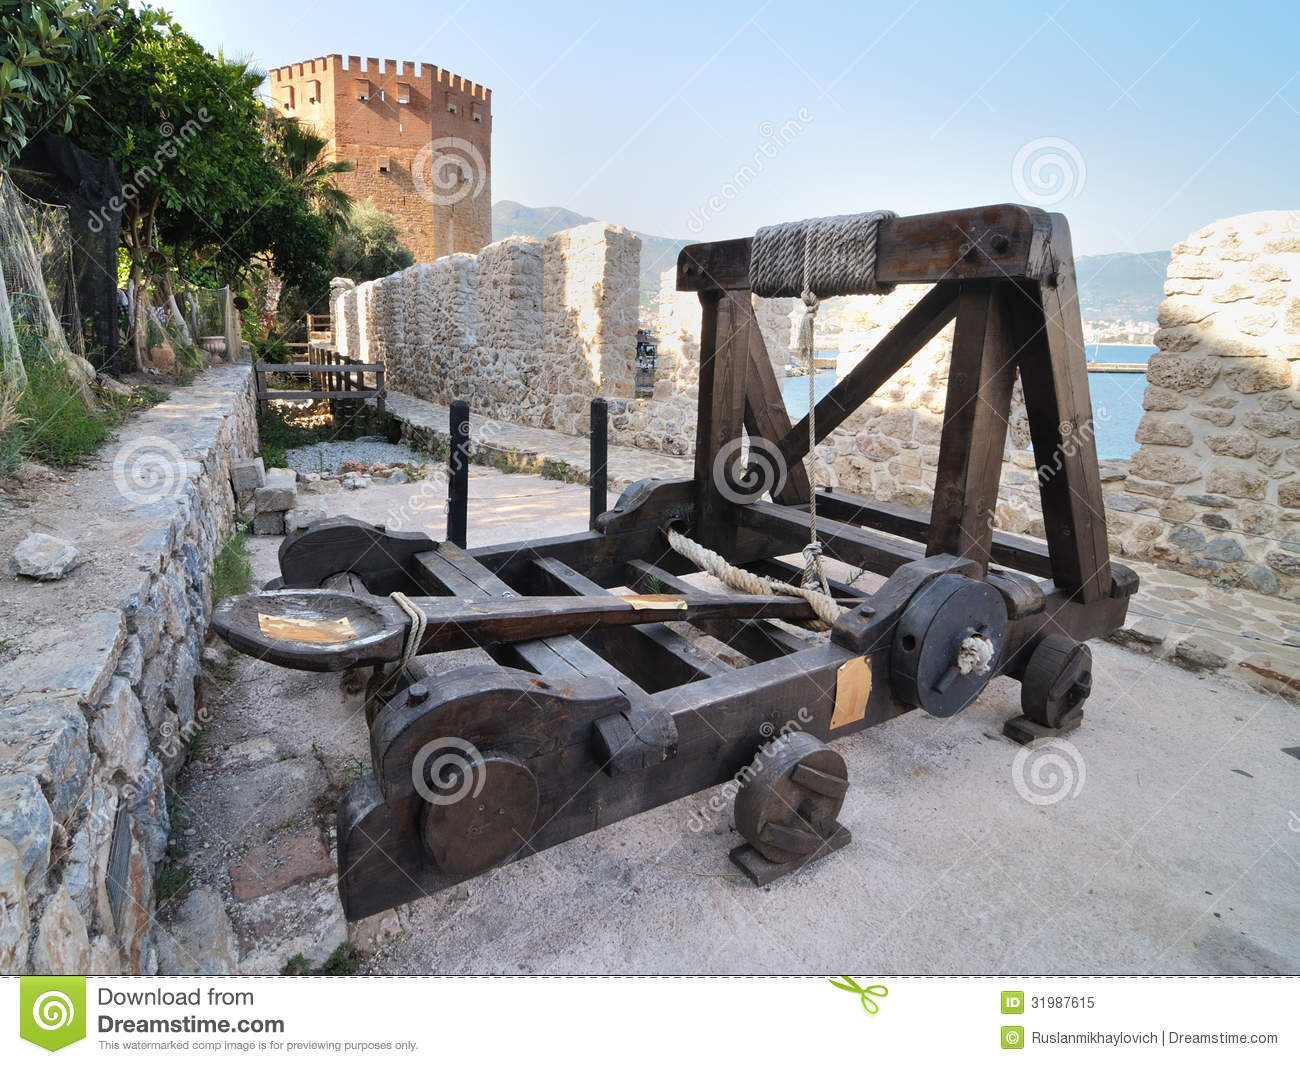 how to make a medieval catapult